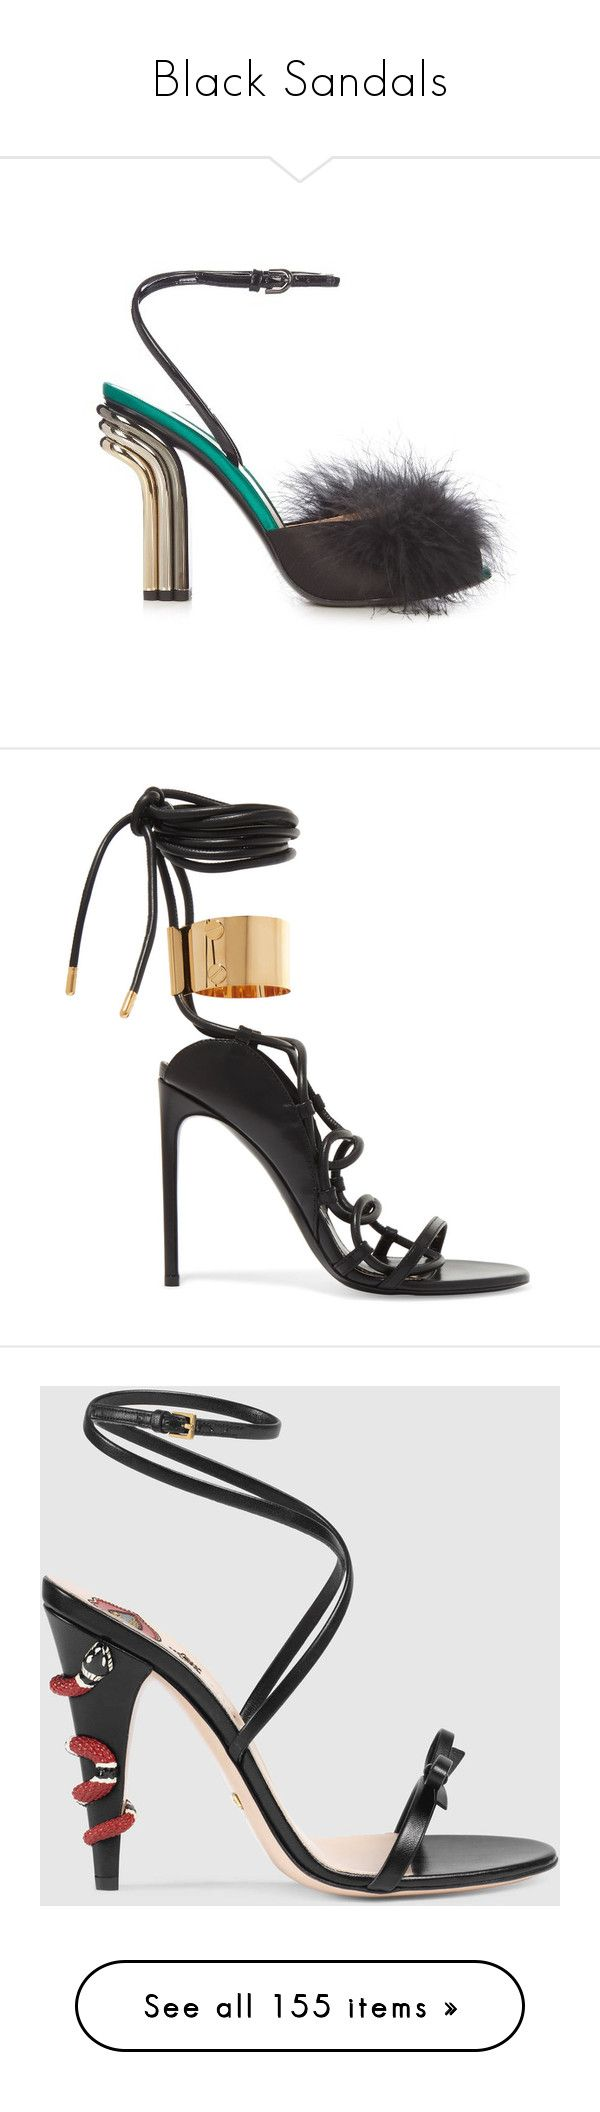 Black sandals polyvore